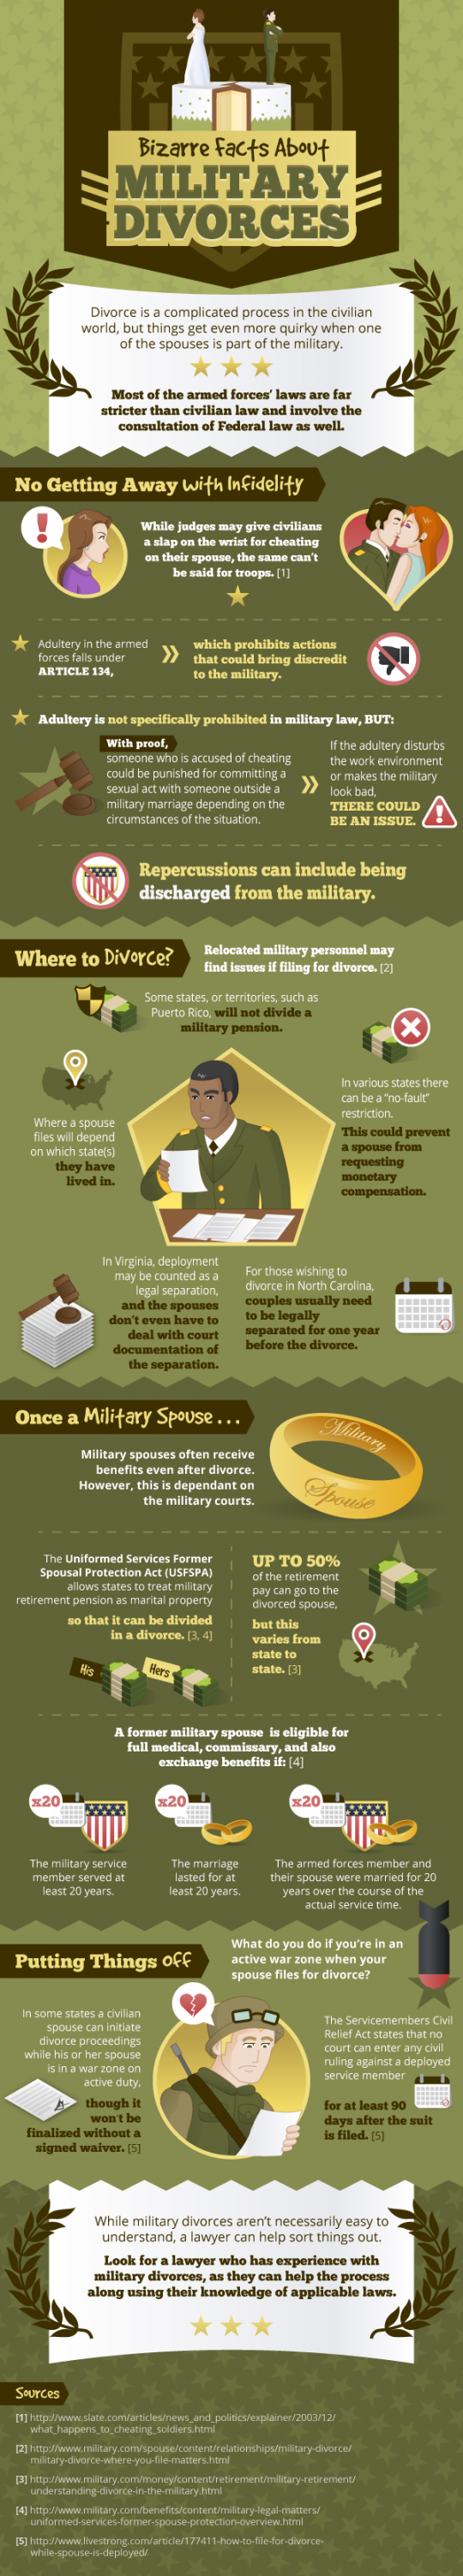 Bizarre Facts About Military Divorces